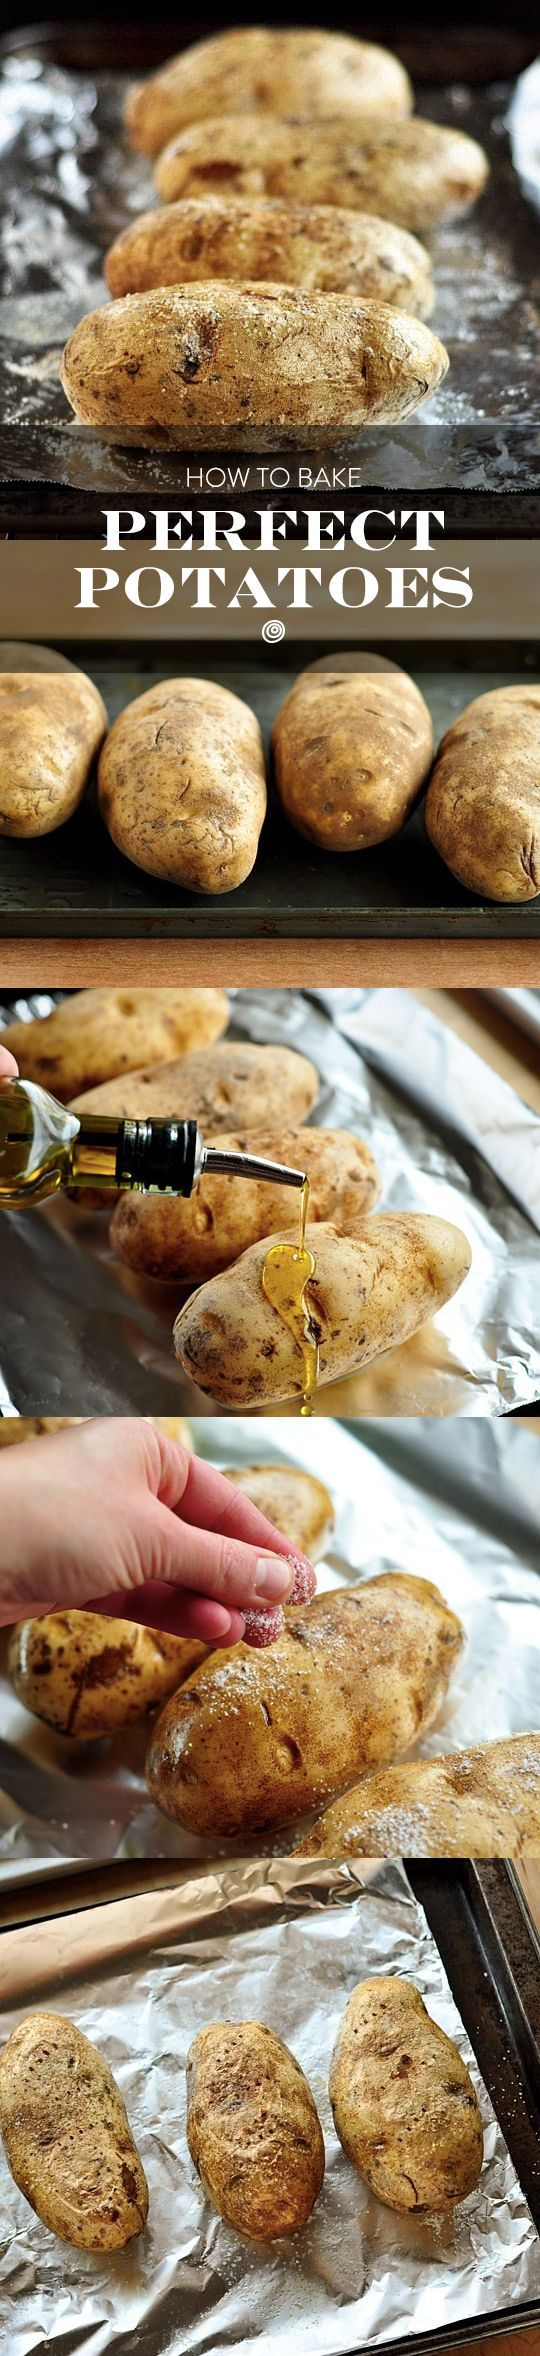 How to Bake a Potato In the Oven. This is one of those things you hardly need recipes for - the kind of recipe that is easy to memorize for a quick (vegetarian) weeknight dinner side dish! Follow these step-by-step instructions for EASY and SIMPLE perfect baked potatoes every time.